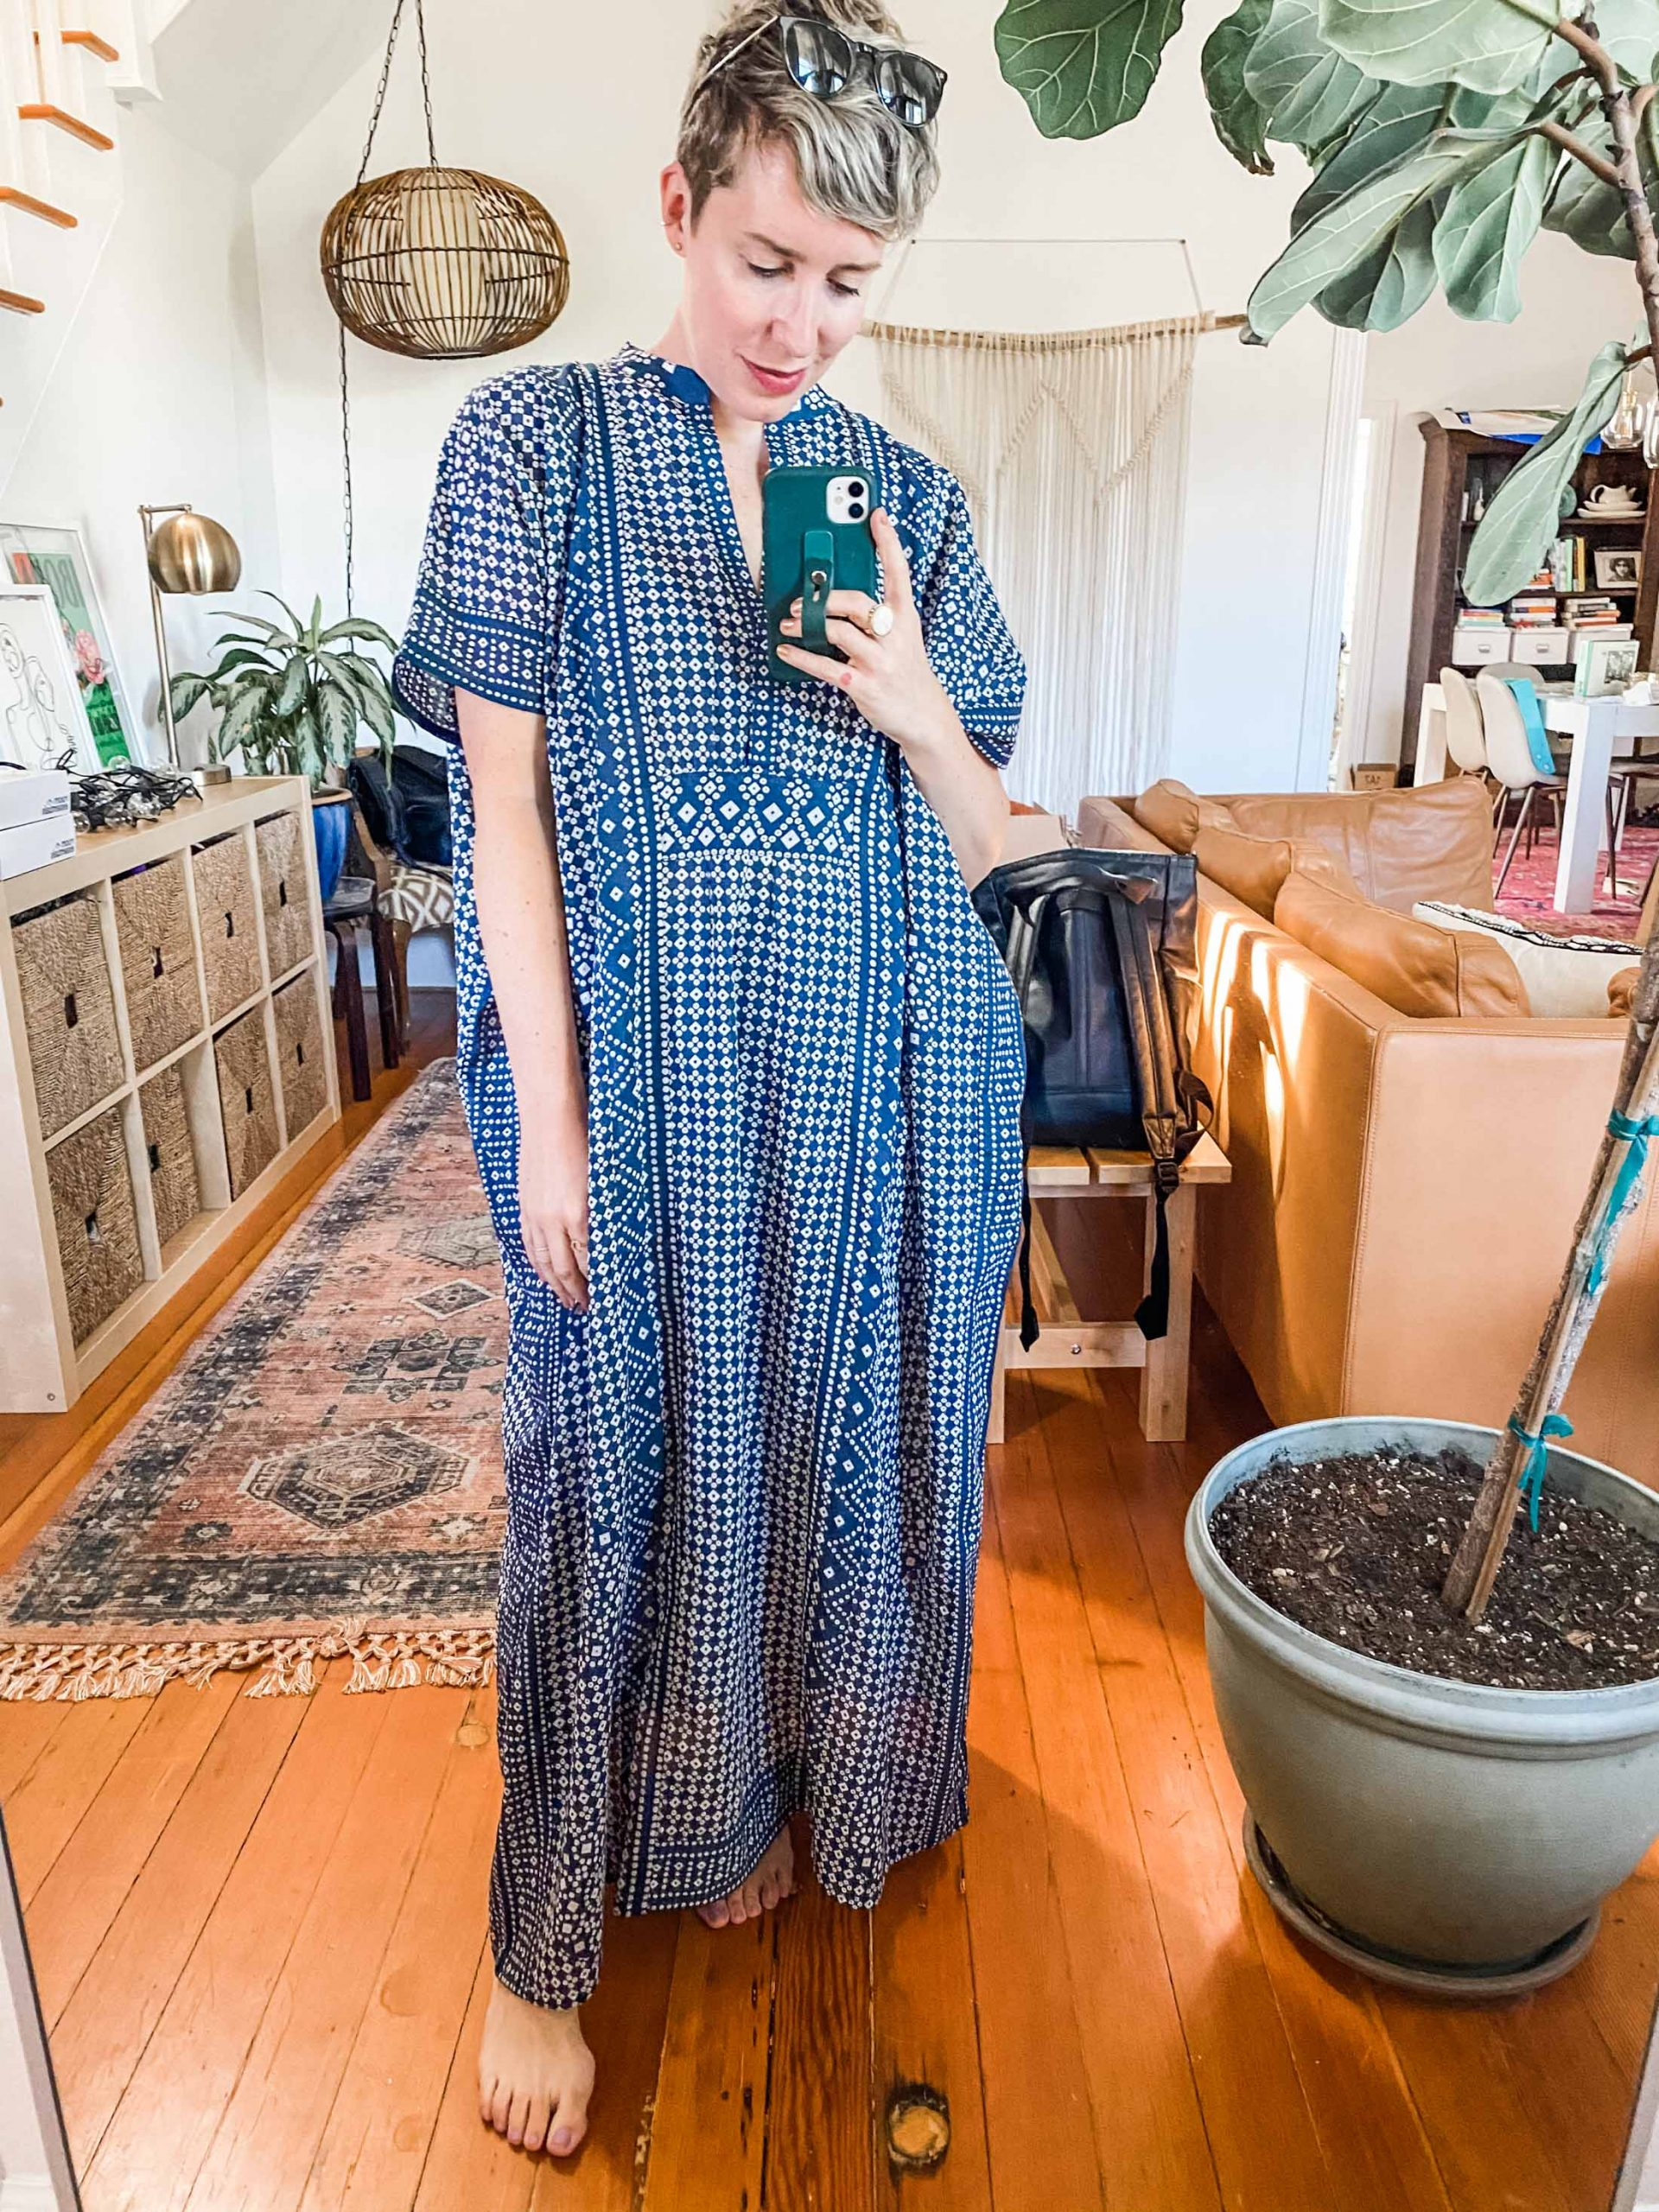 This summer is all about comfort. That's why Emerson Fry Caftans are my hot weather go to. Beautiful patterns + sustainable practices makes these a 10/10